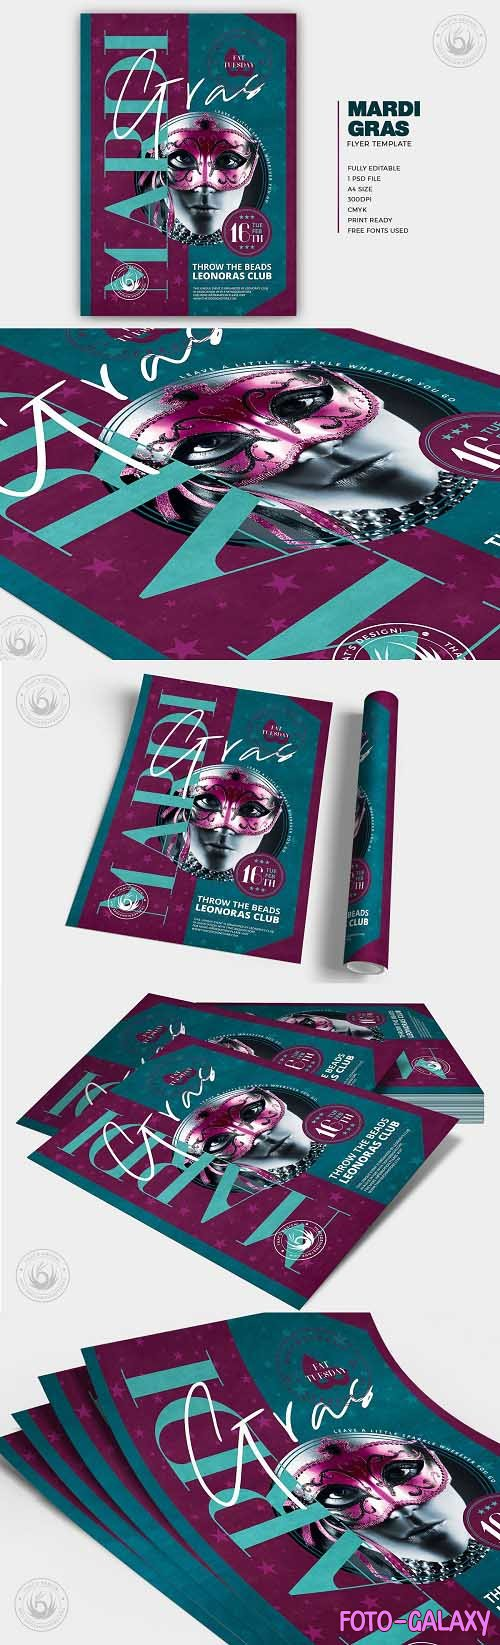 Mardi Gras Flyer Template V4 - 5764564